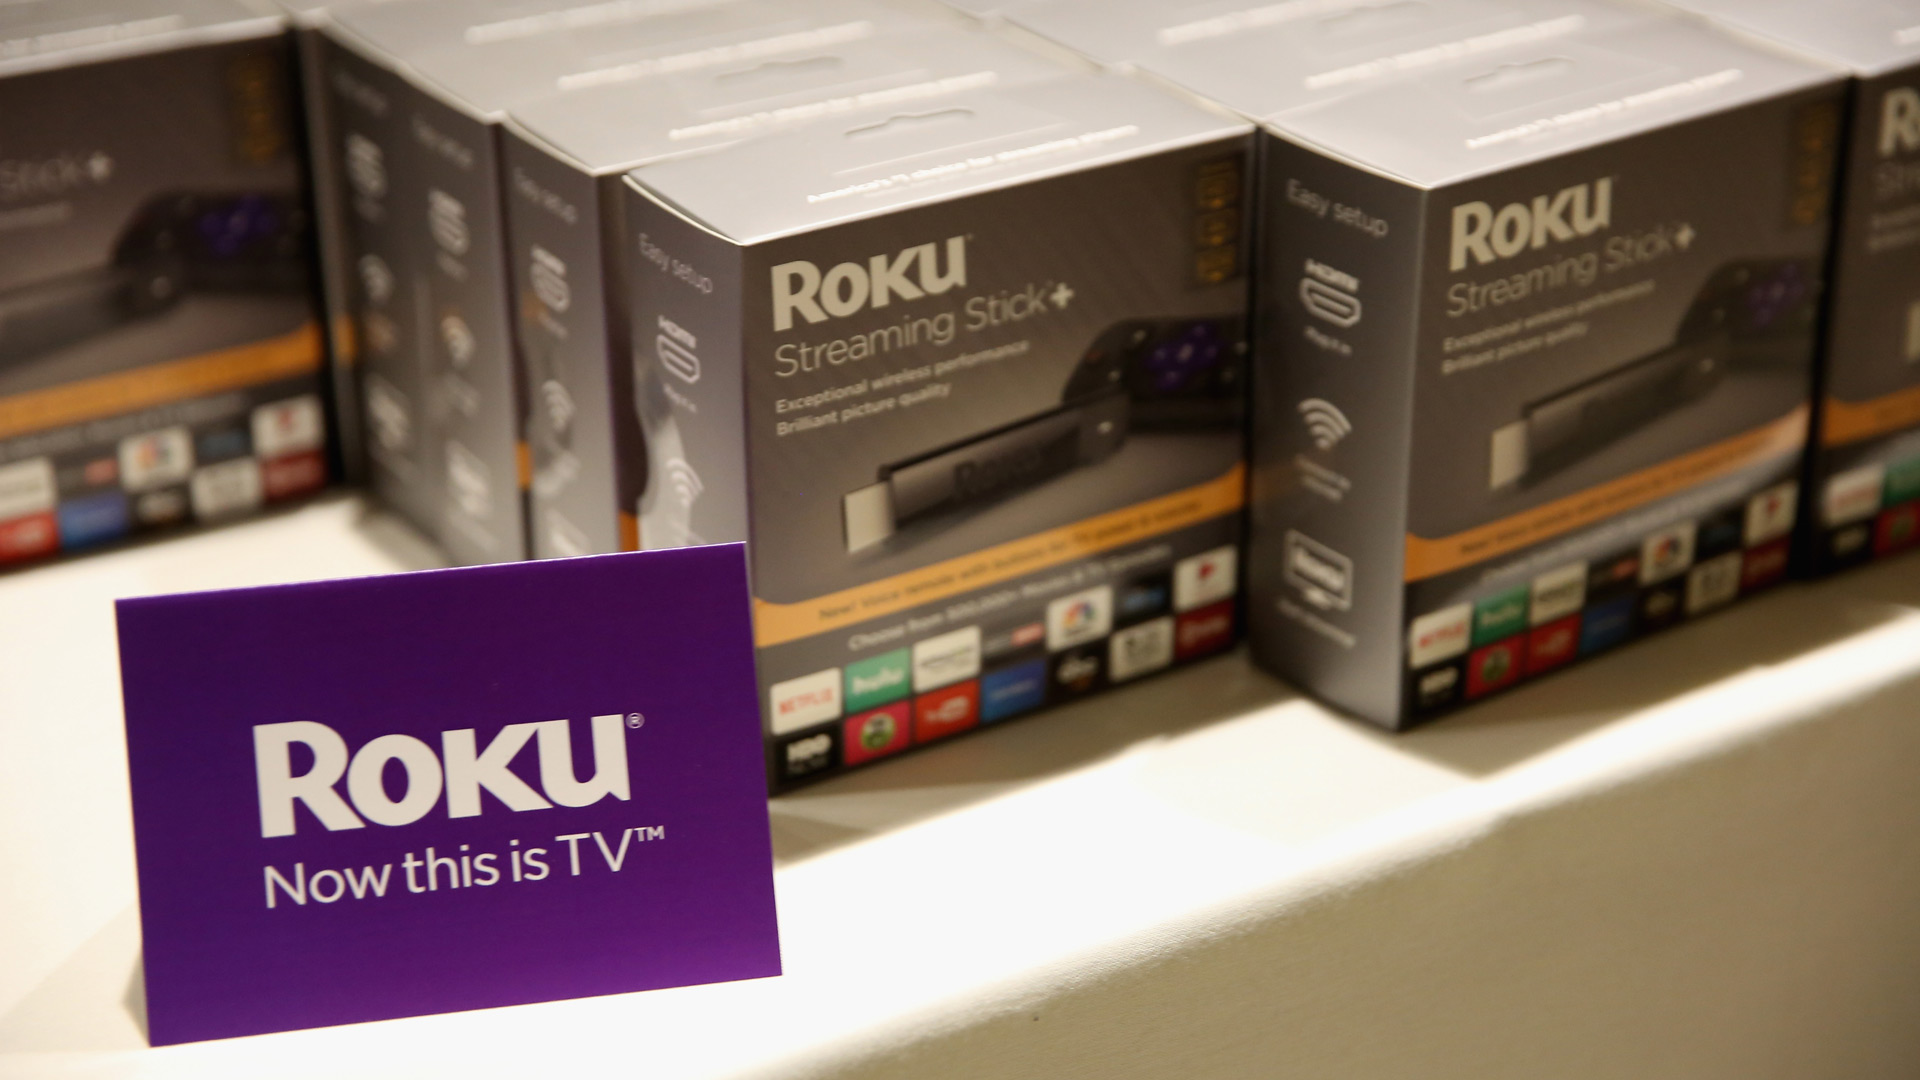 Roku (Photo by Monica Schipper/Getty Images)